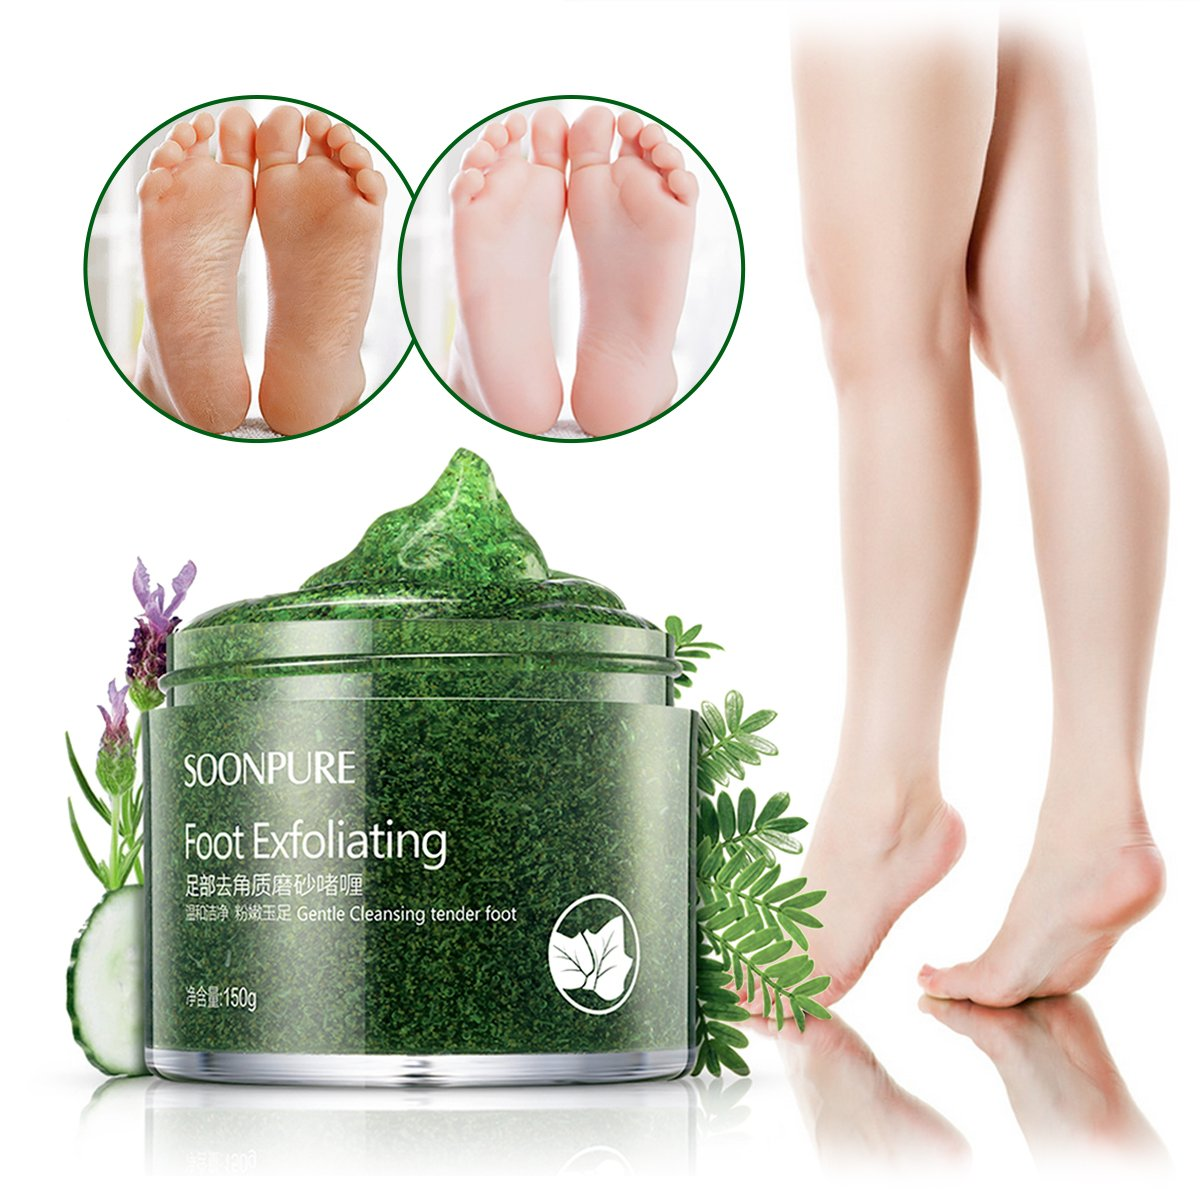 Foot Exfoliating Scrub Gel, Foot Whitening Skin Care, Foot Moisturizer, Foot Callus Remover- Softens for Thick Cracked Rough Dead Dry Heel Feet with Natural Phytoextraction Particles, 5.07 Fl.Oz NICOOL